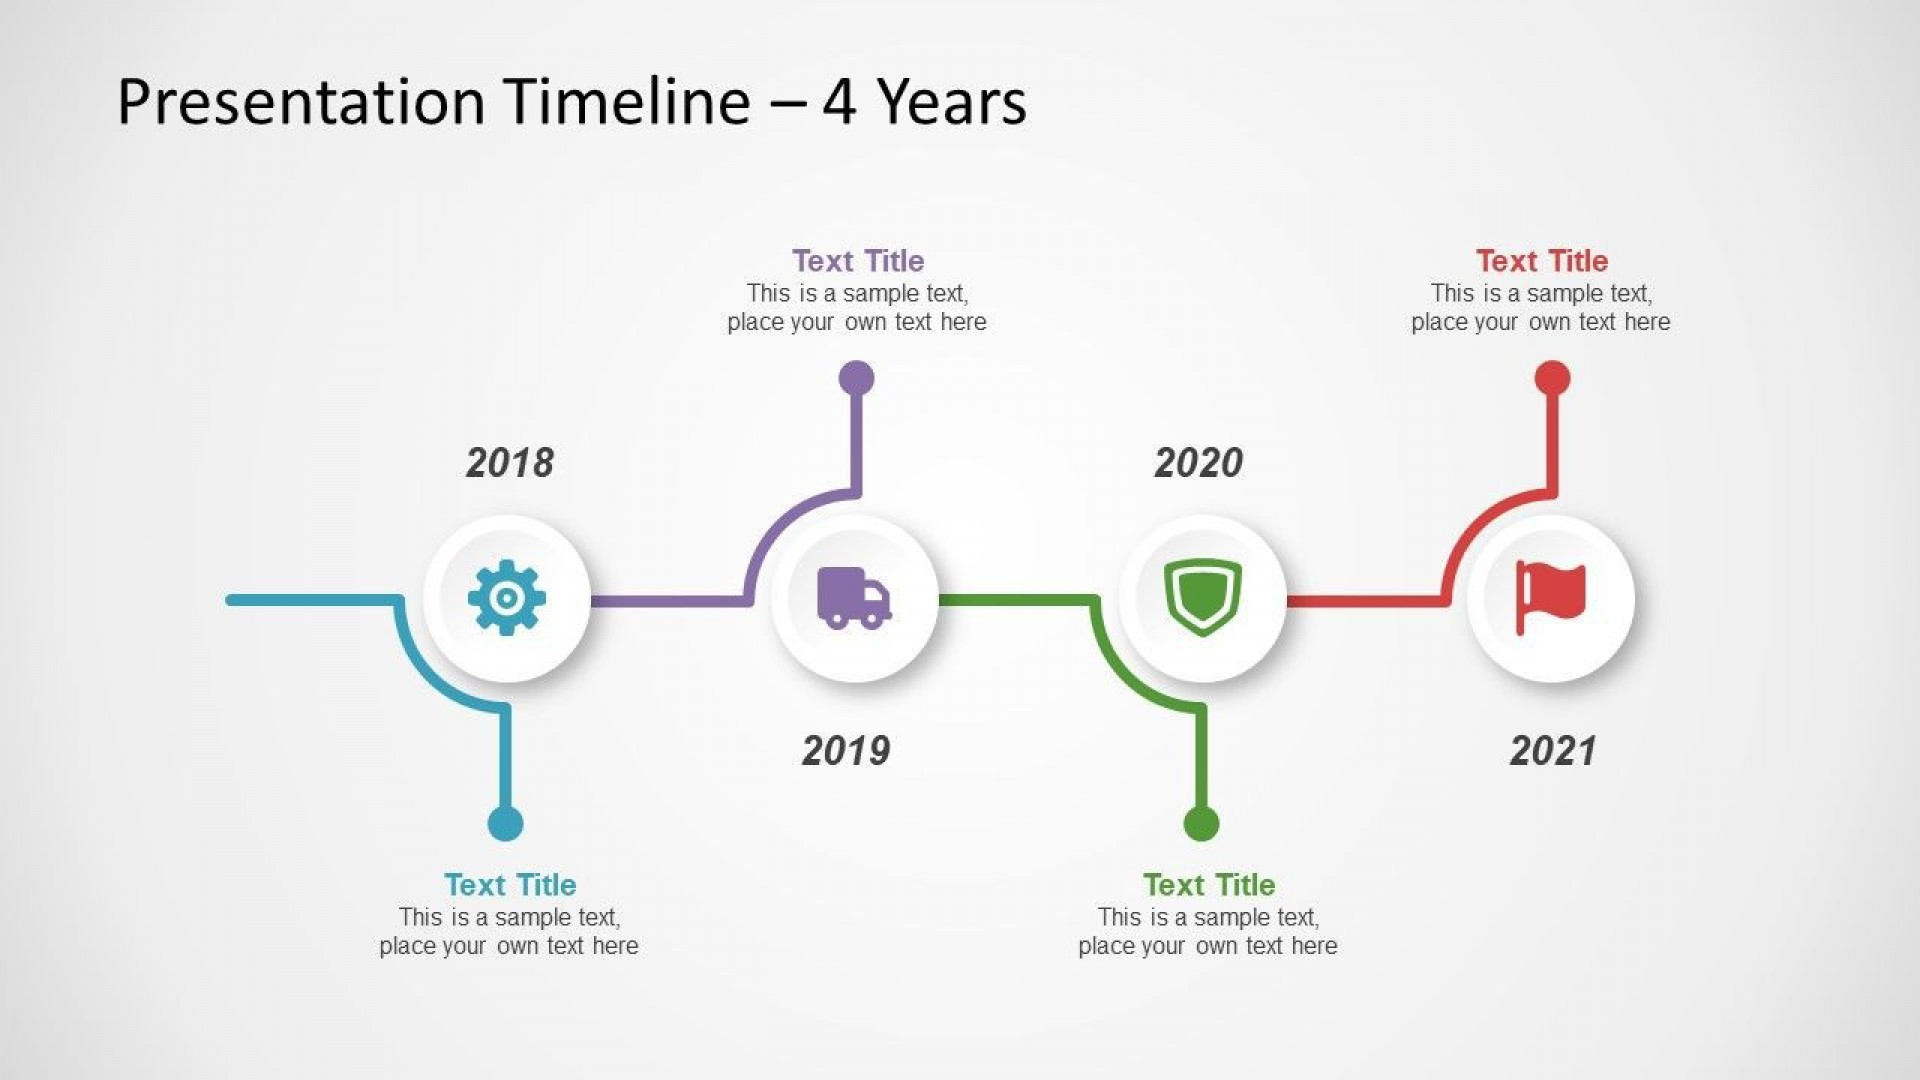 000 Simple Timeline Template Powerpoint Free Download Picture  Project Ppt Animated1920